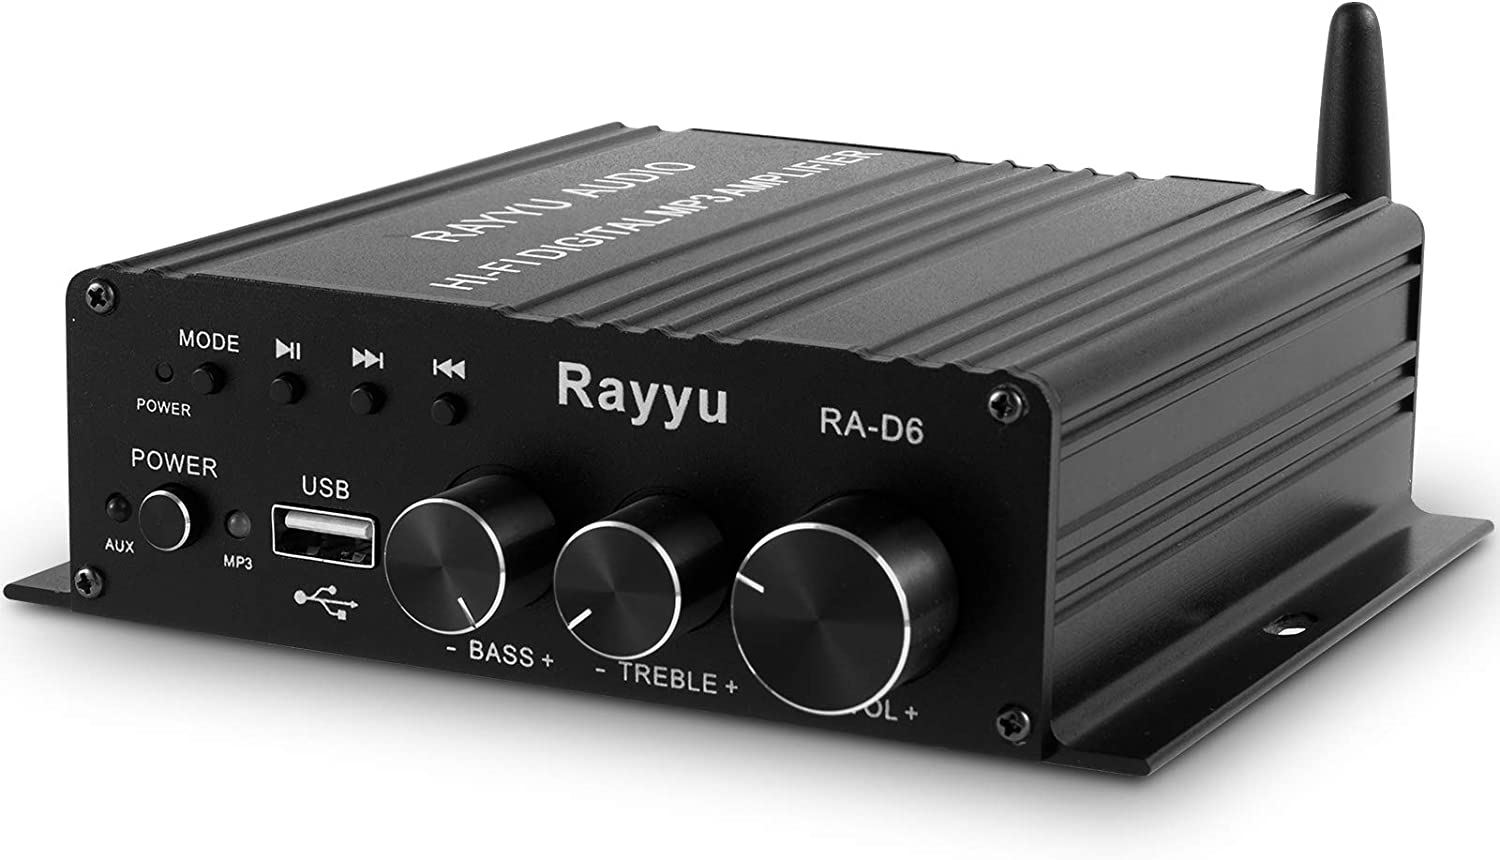 Rayyu Professional Mini Hi-Fi Digital MP3 Amplifier 2x50W Bluetooth 5.0 Power Amplifier Home Theater Stereo Audio USB Player Amp with Bass and Treble Control 2 Channel-Power Adapter Not Included RA-D6